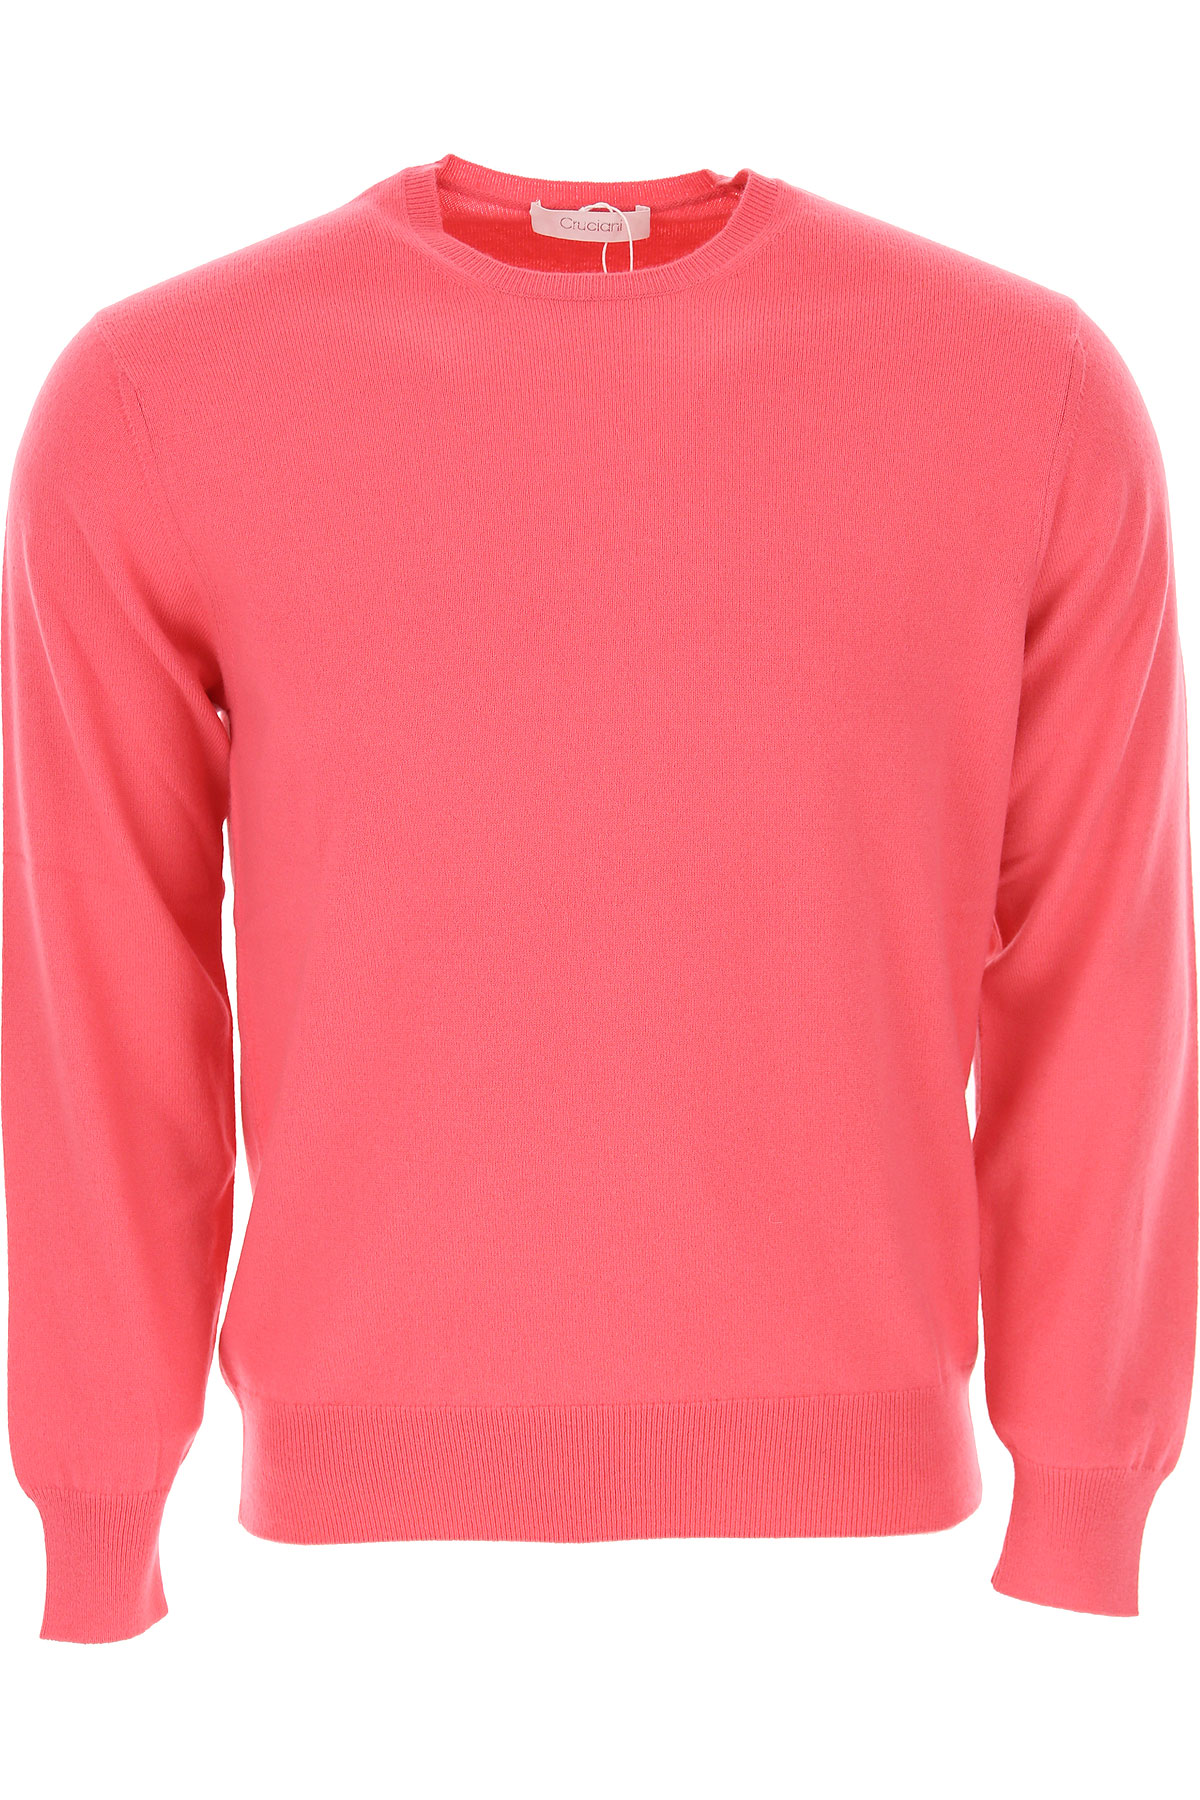 Image of Cruciani Sweater for Men Jumper, Coral Pink, Cashmere, 2017, L M S XL XXL